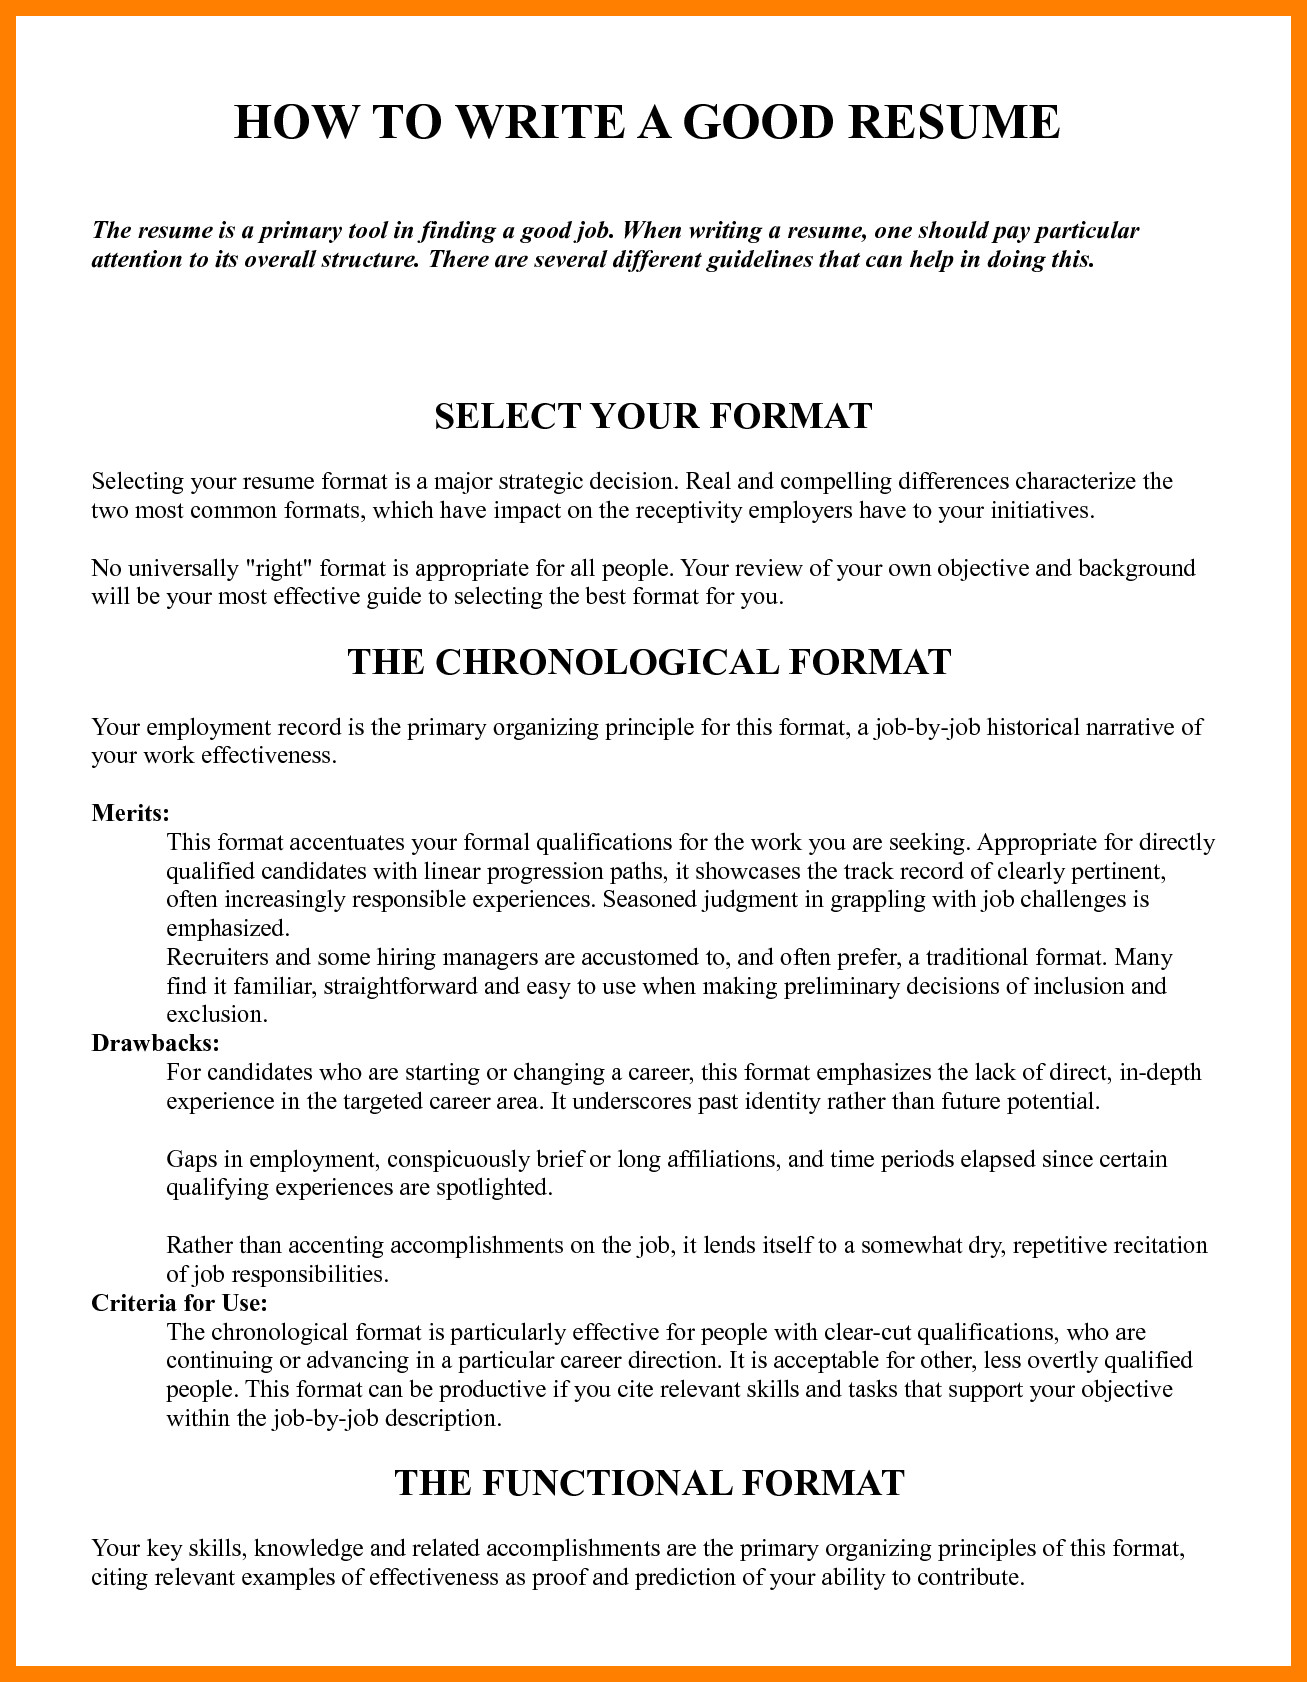 Spacing For Cover Letter.Resume Format Spacing Resume Format